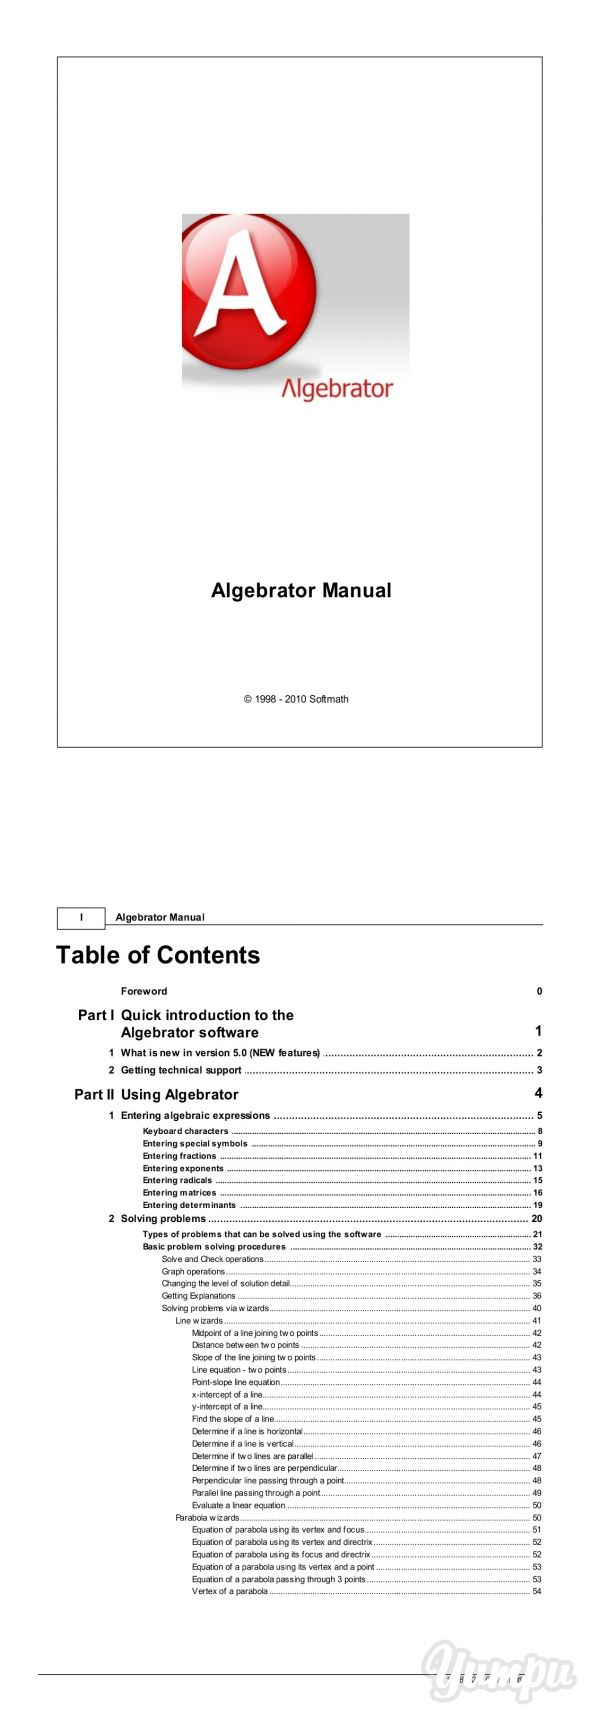 online algebra help ideas about algebra solver expression solver  ideas about algebra solver expression solver algebrator manual for your algebra problem solver magazine 118 pages